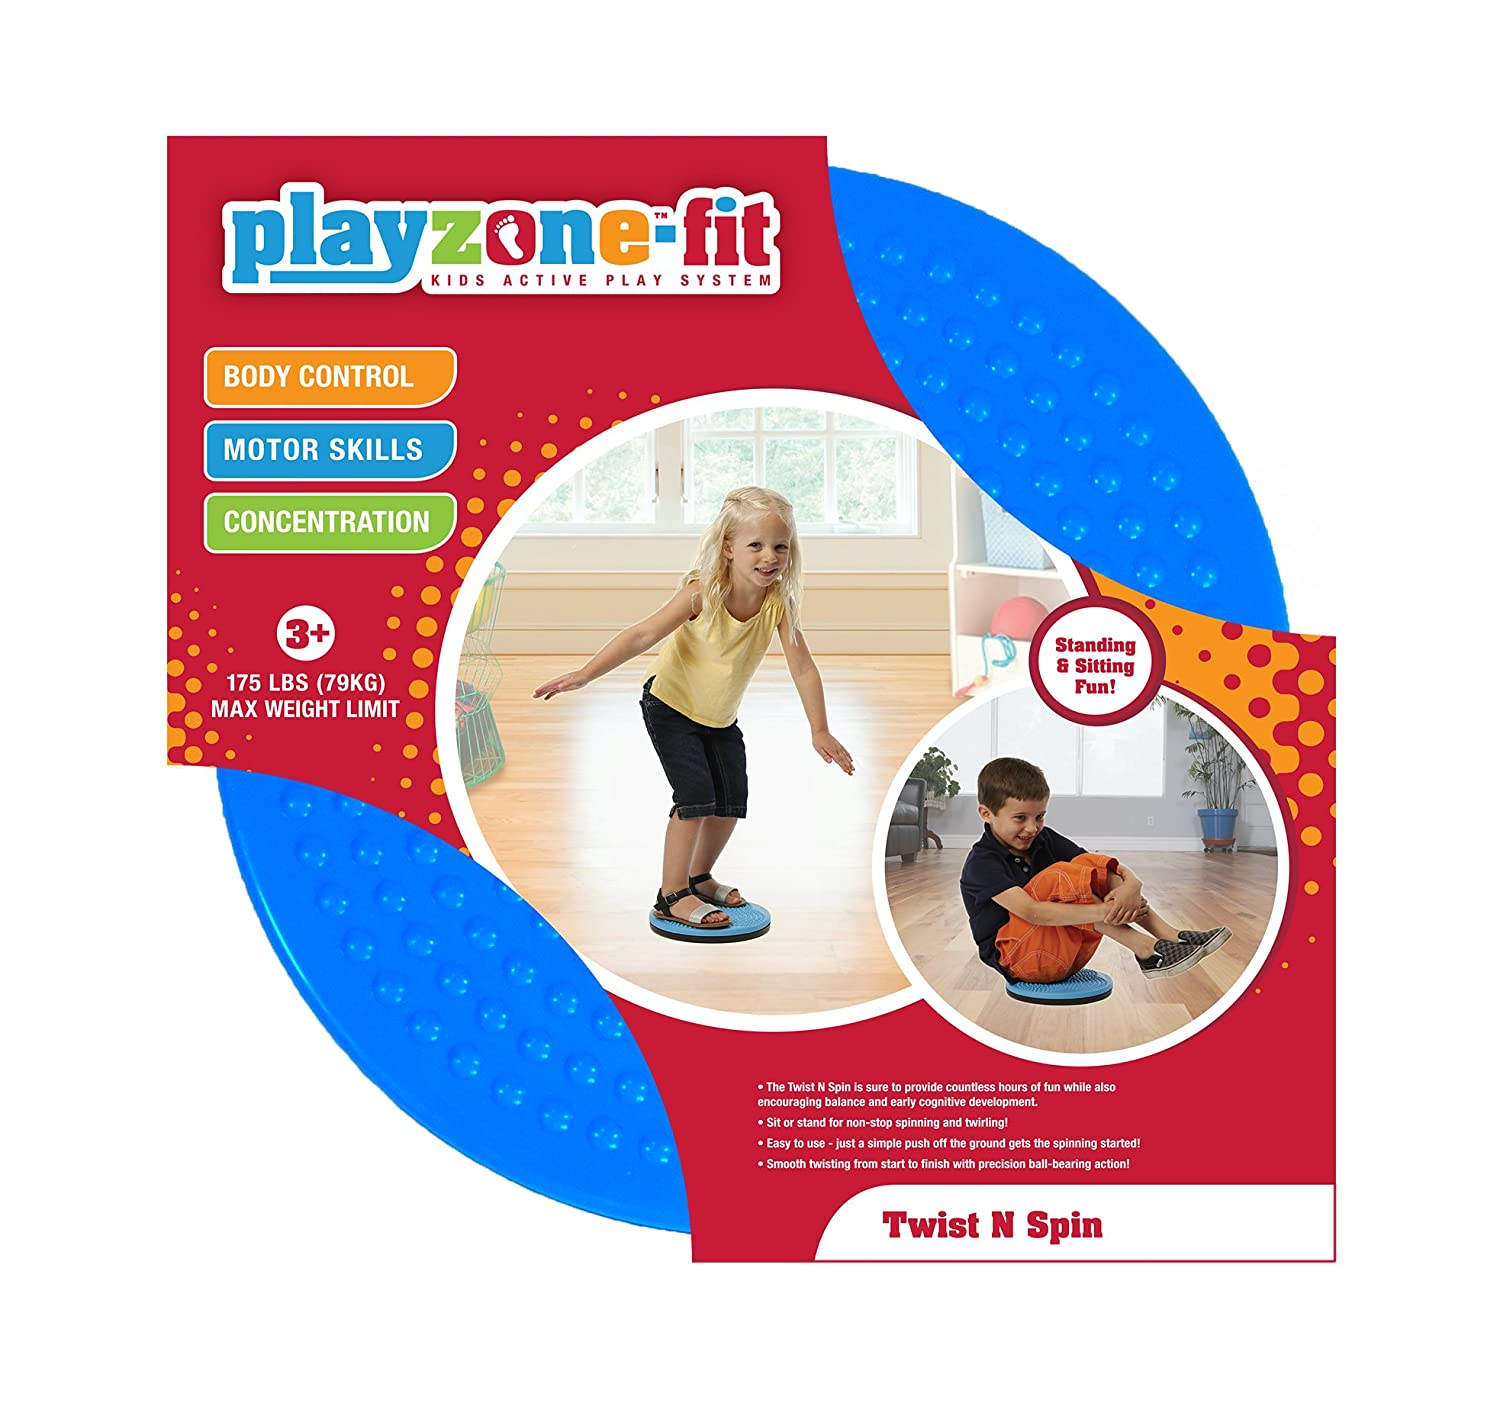 Playzone-fit Twist N Spin Ride-On Brand 44 plz.608